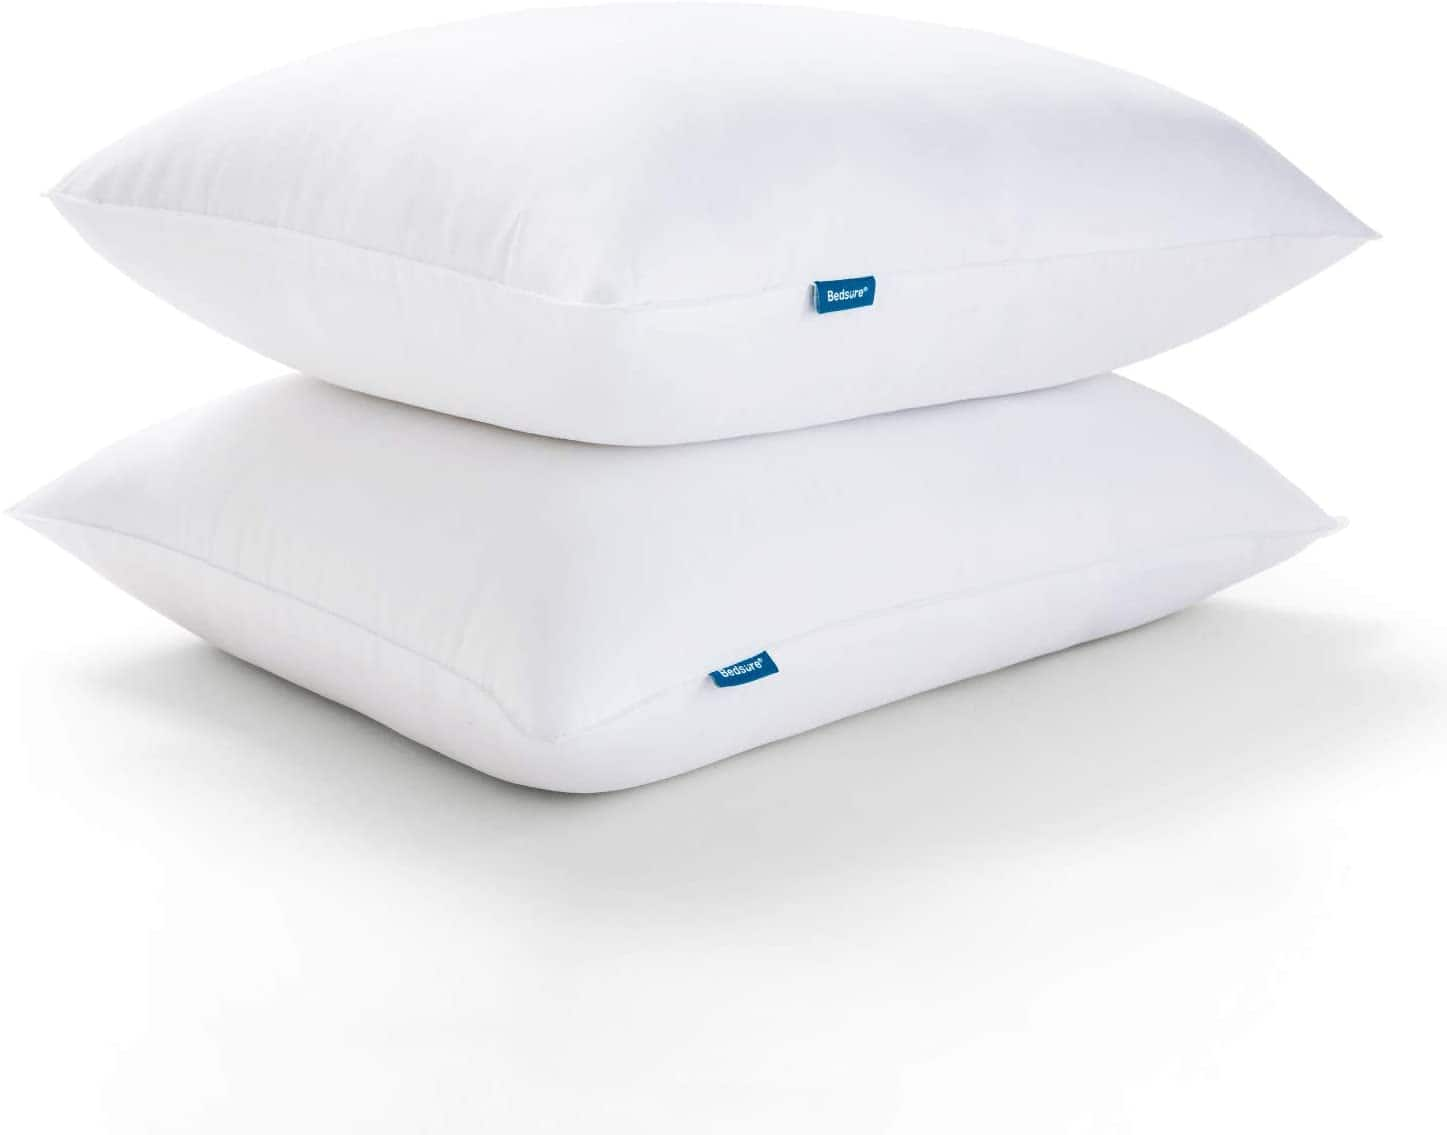 Premium Down Alternative Pillows for Sleeping from $20.99 + Free Shipping